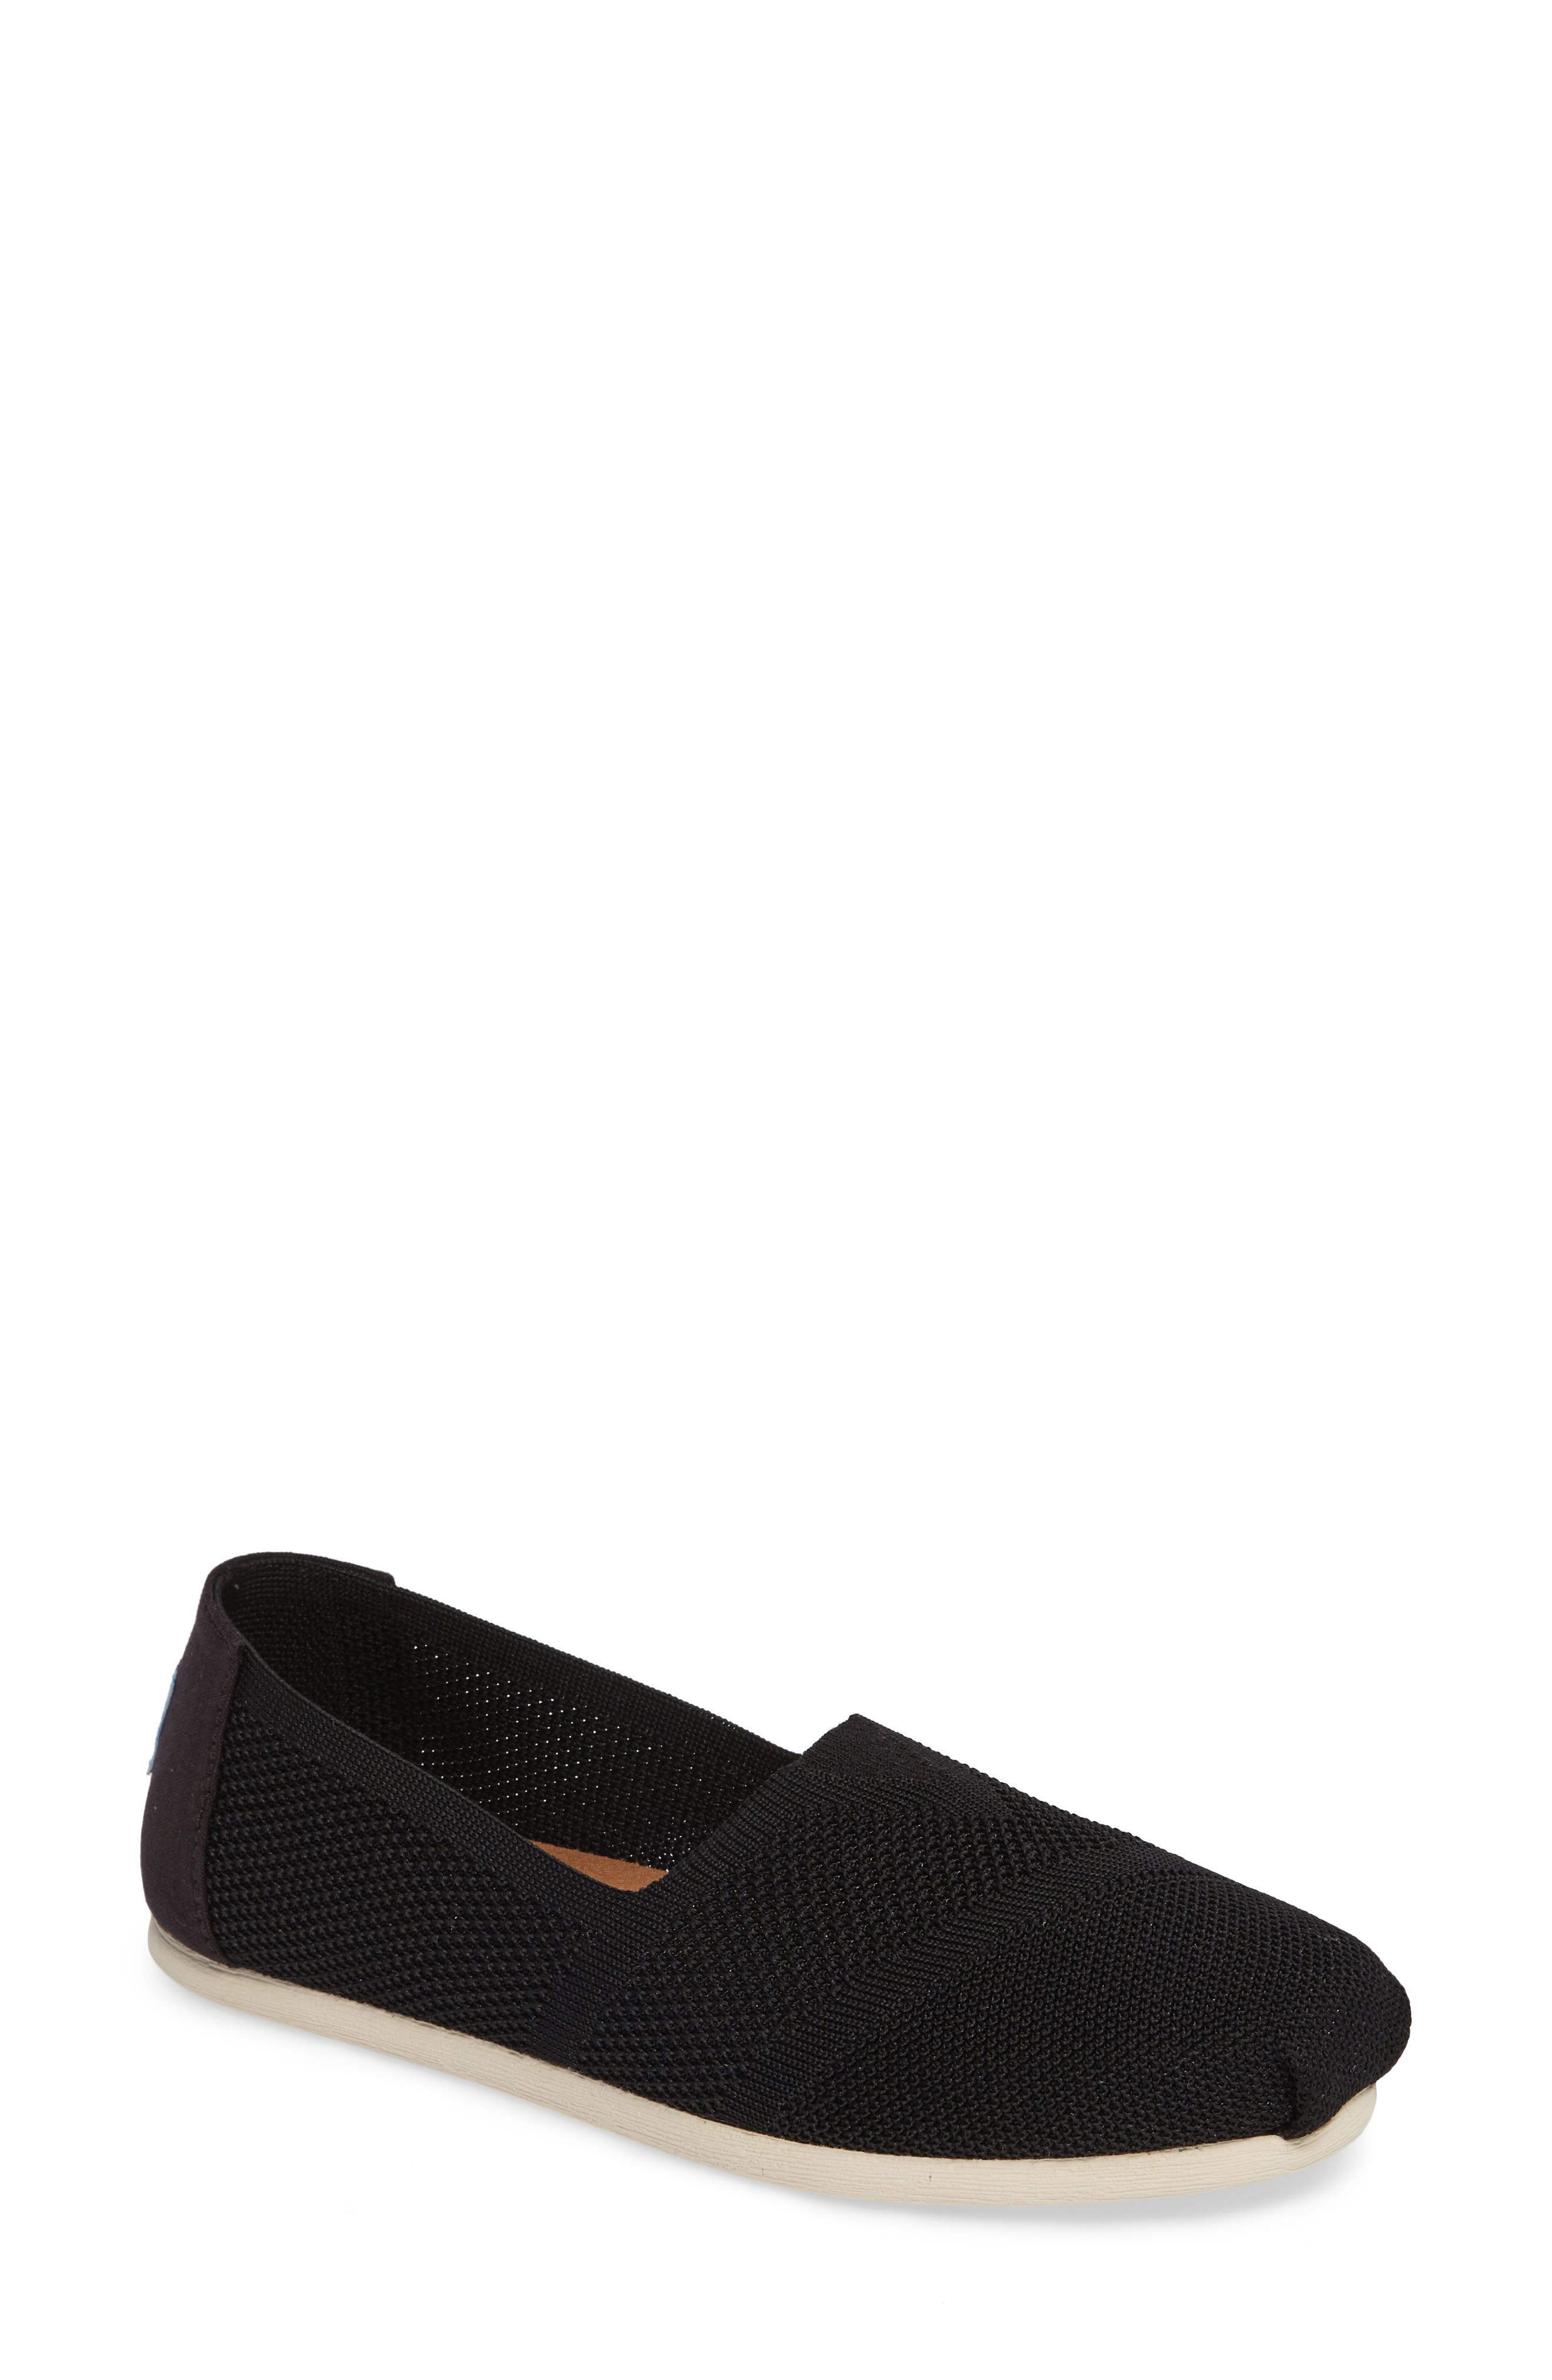 Main Image - TOMS Alpargata Knit Slip-On (Women)